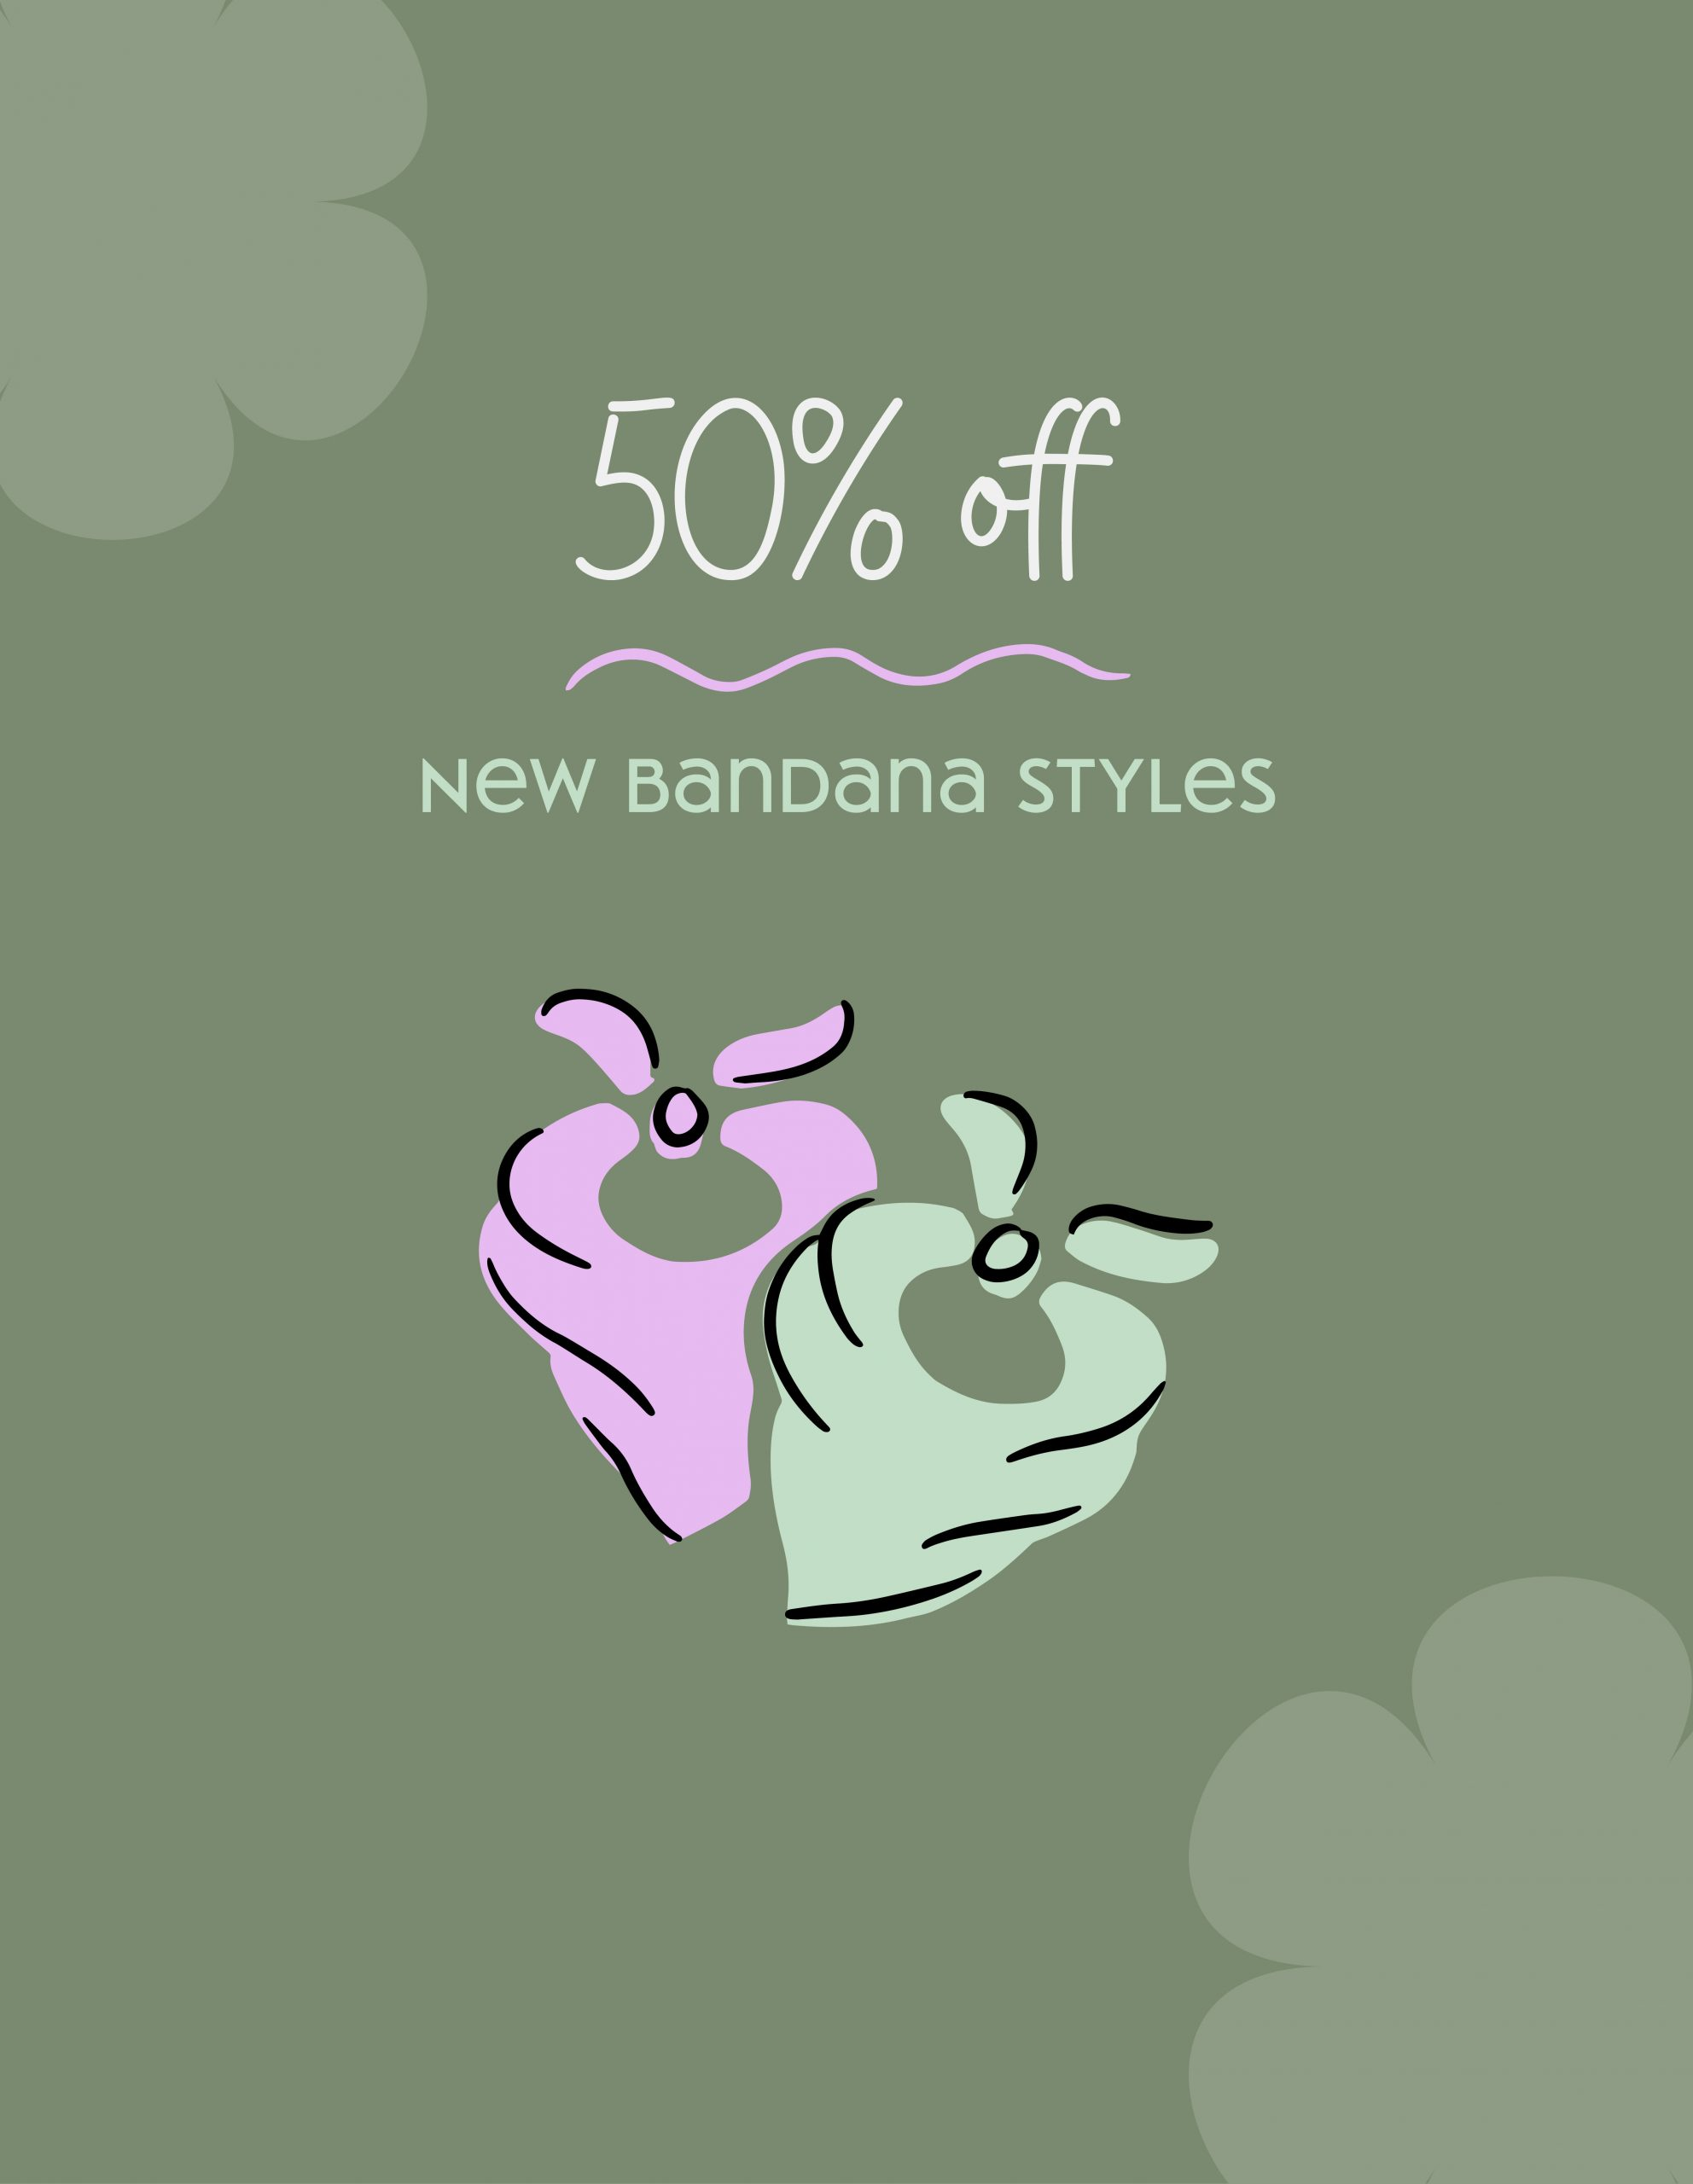 fifty percent off new bandana styles